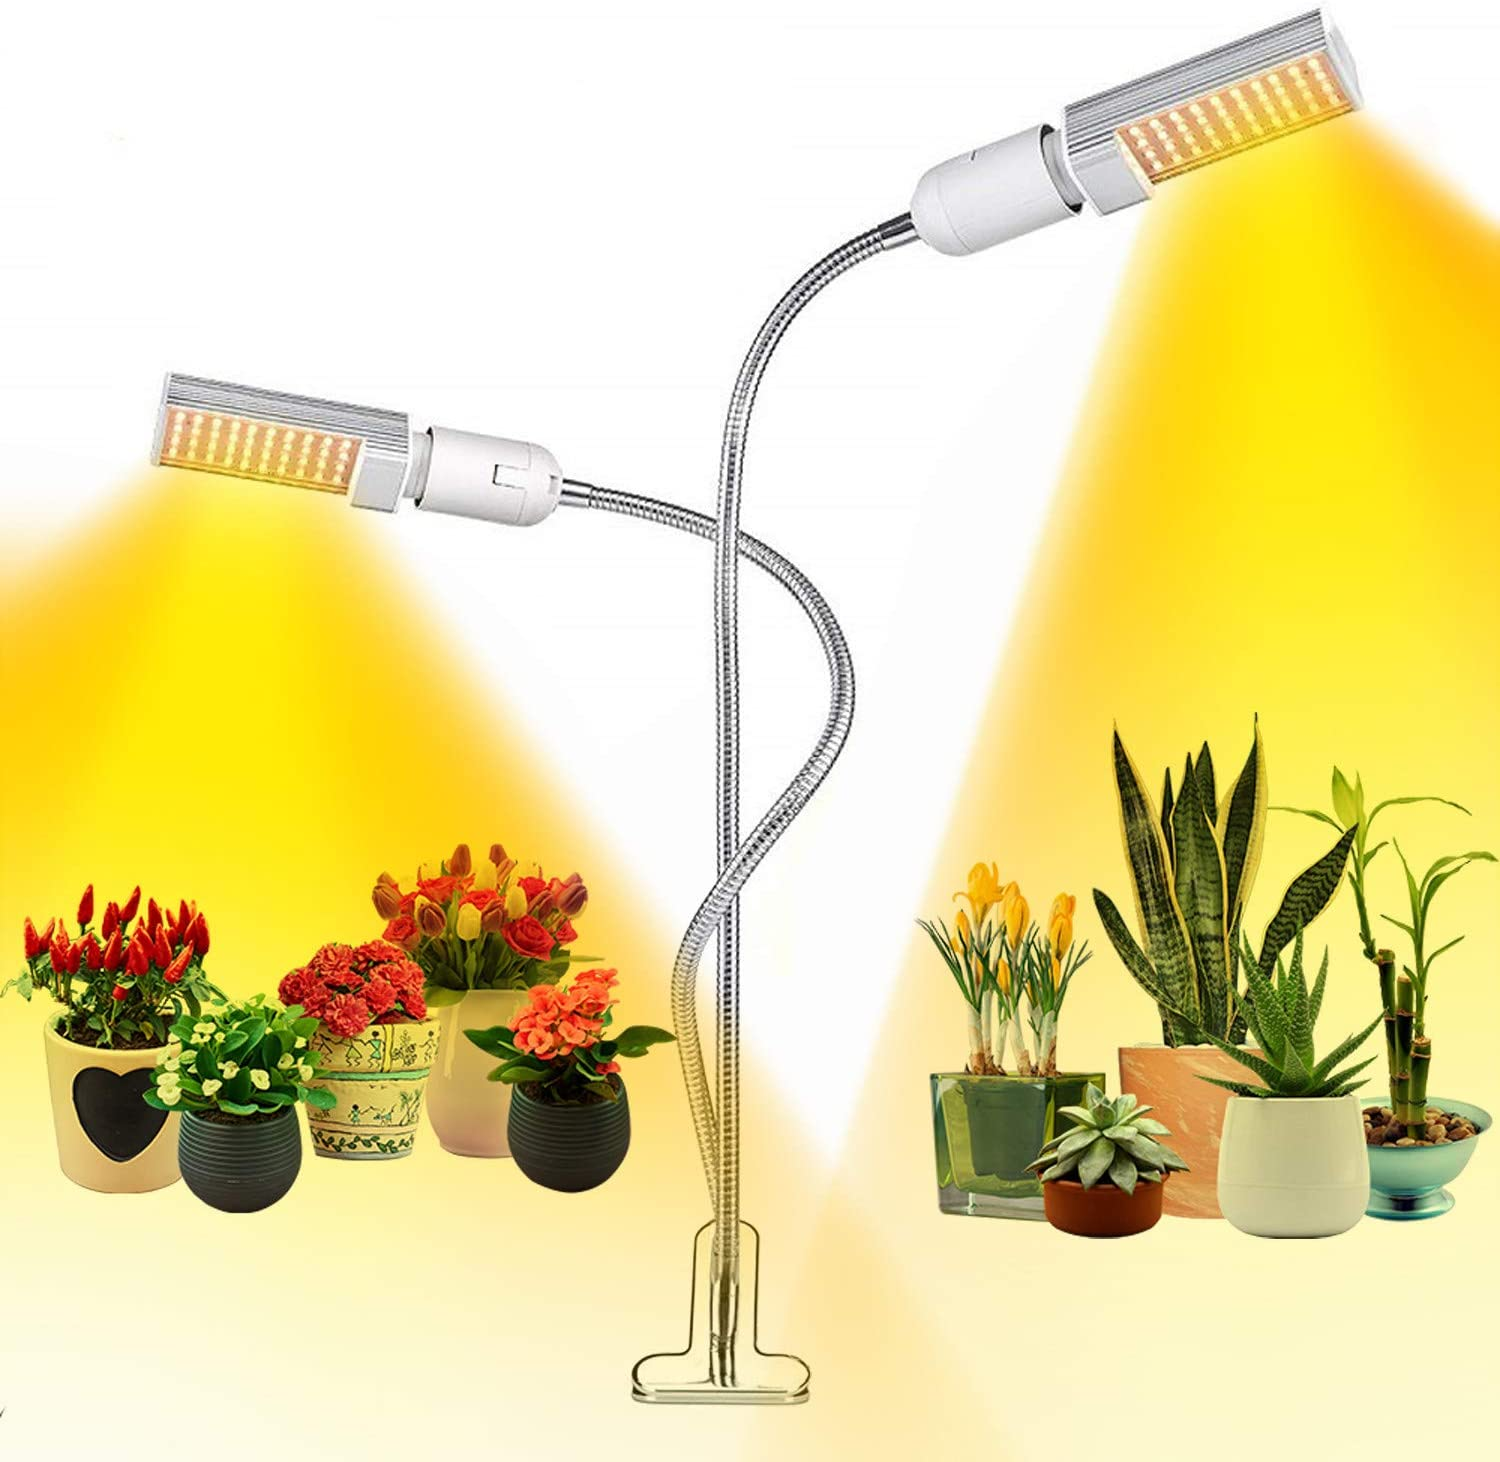 Optics Grow Lights for Seed Starting Full Spectrum LED Plant Grow Lamp for Succulent Indoor Plants Sun Lights 2 Head Clip Lamps Replaceable Bulb Adjustable Gooseneck